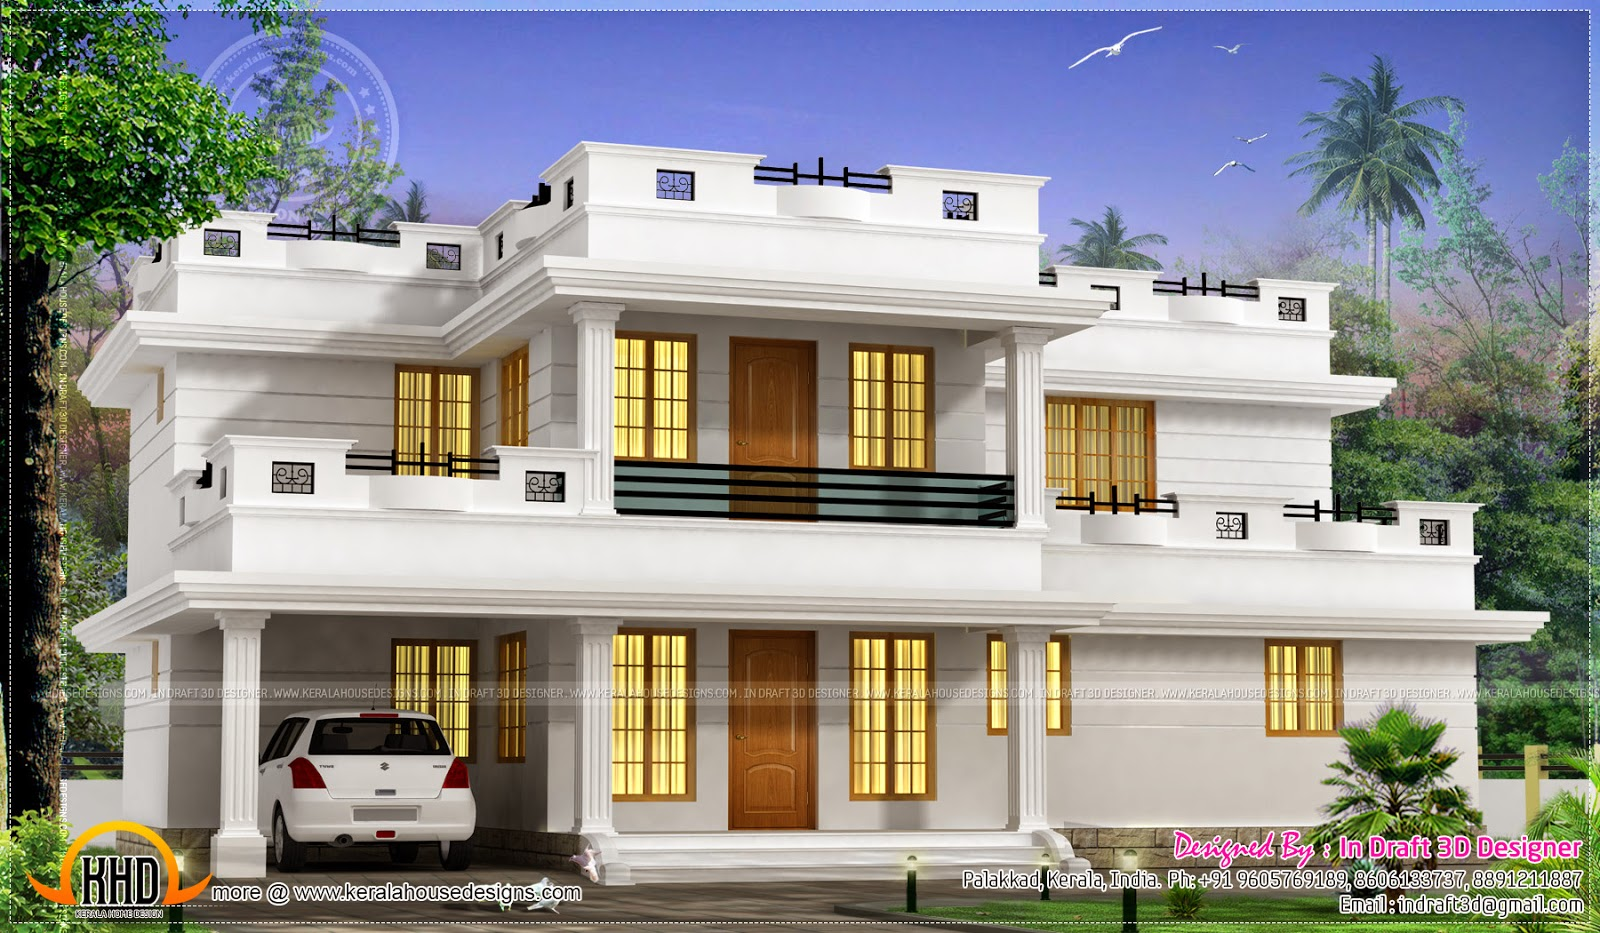 ... square feet 4 bhk flat roof house - Kerala home design and floor plans